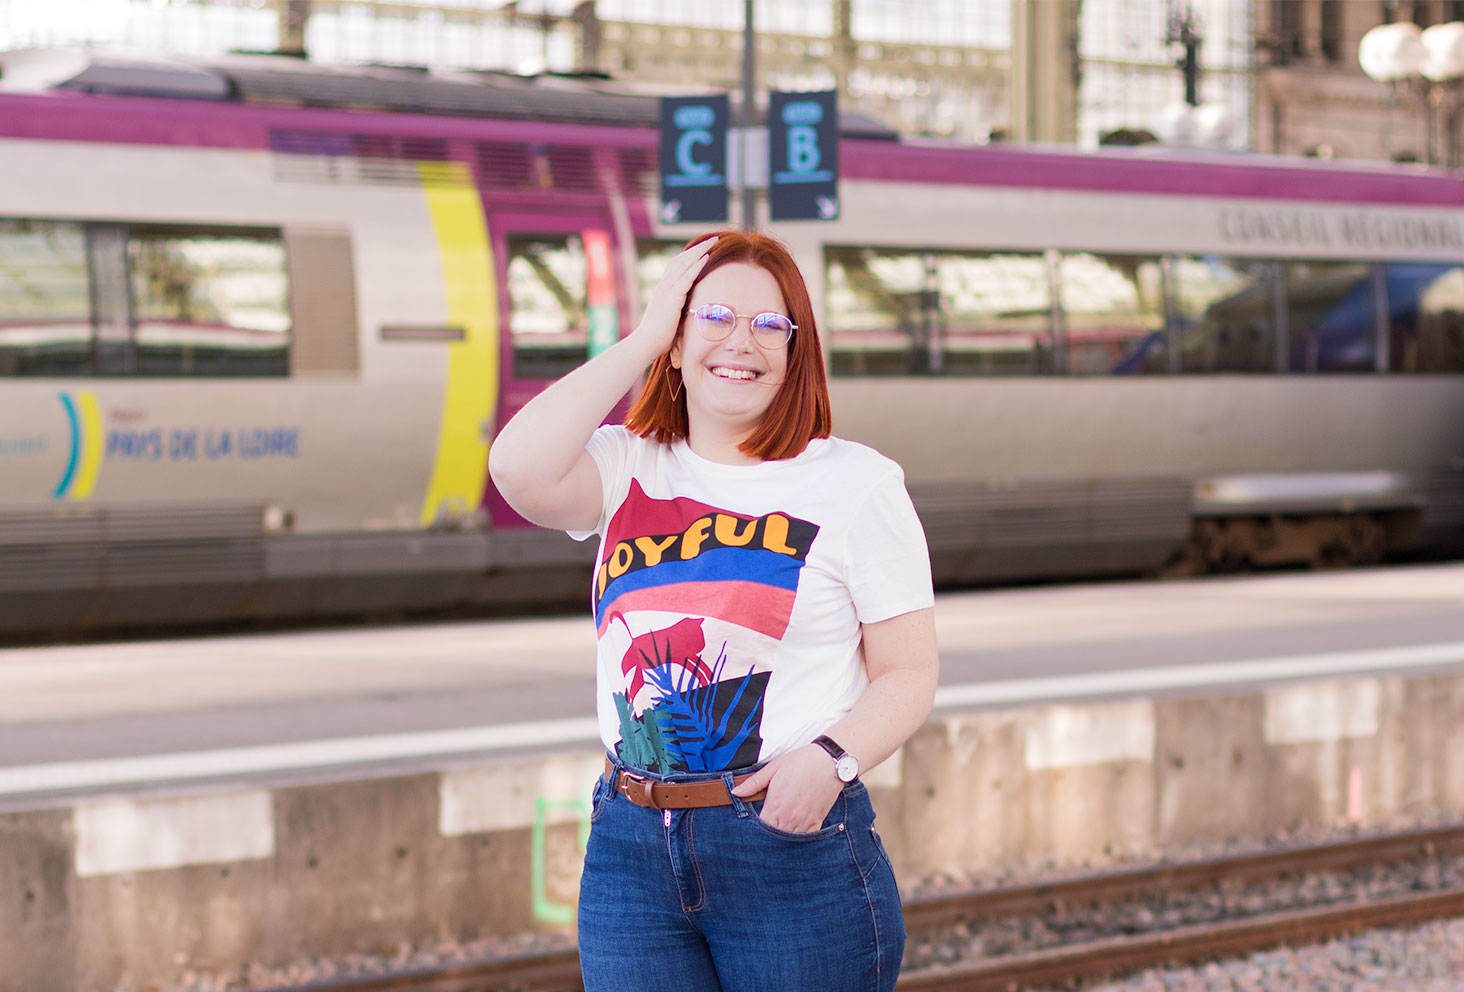 En t-shirt loose Joyful de face, une main dans les cheveux, devant un train coloré